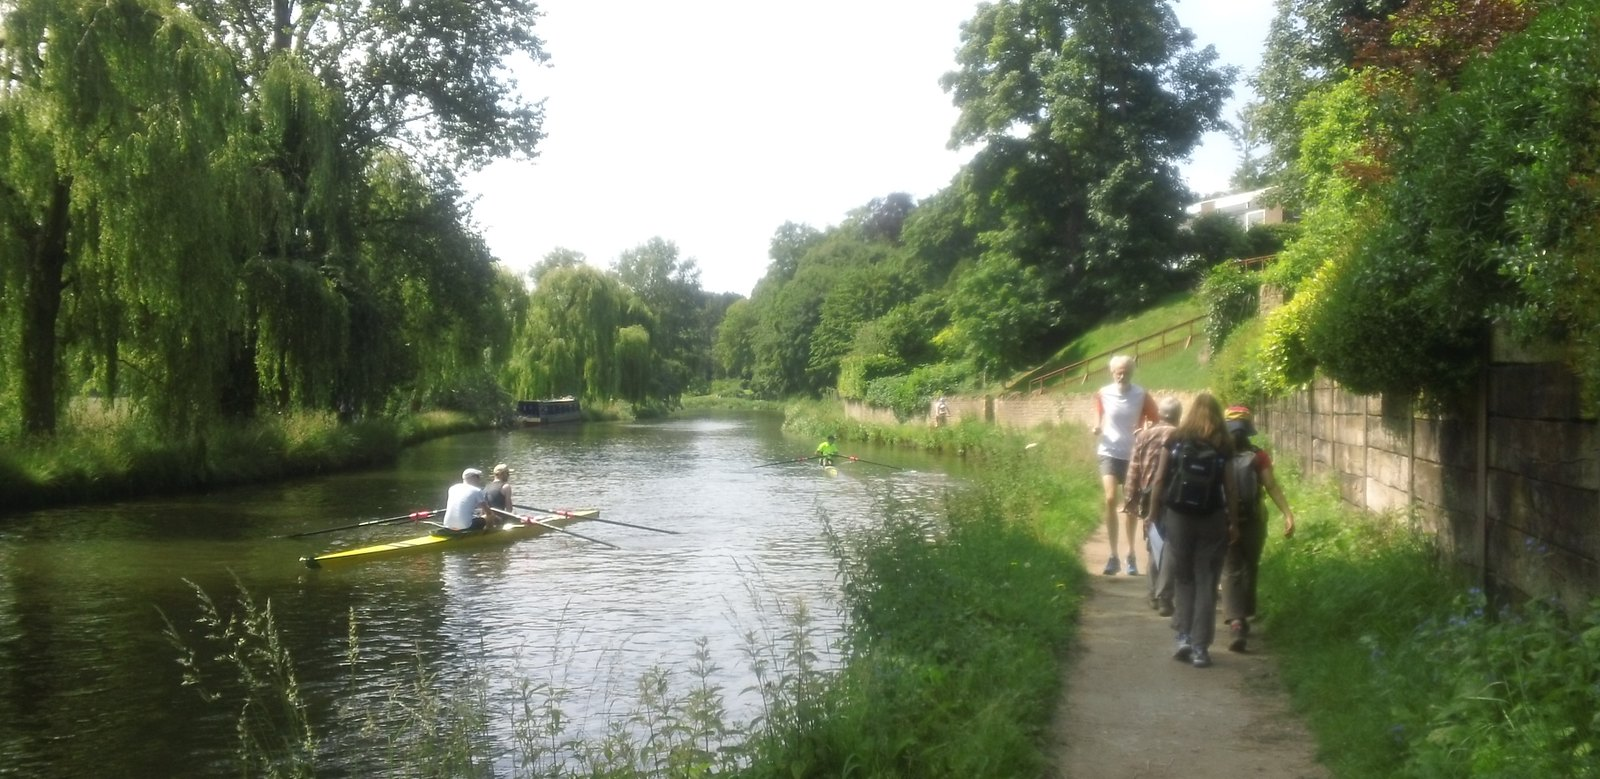 Busy morning along the river Guildford